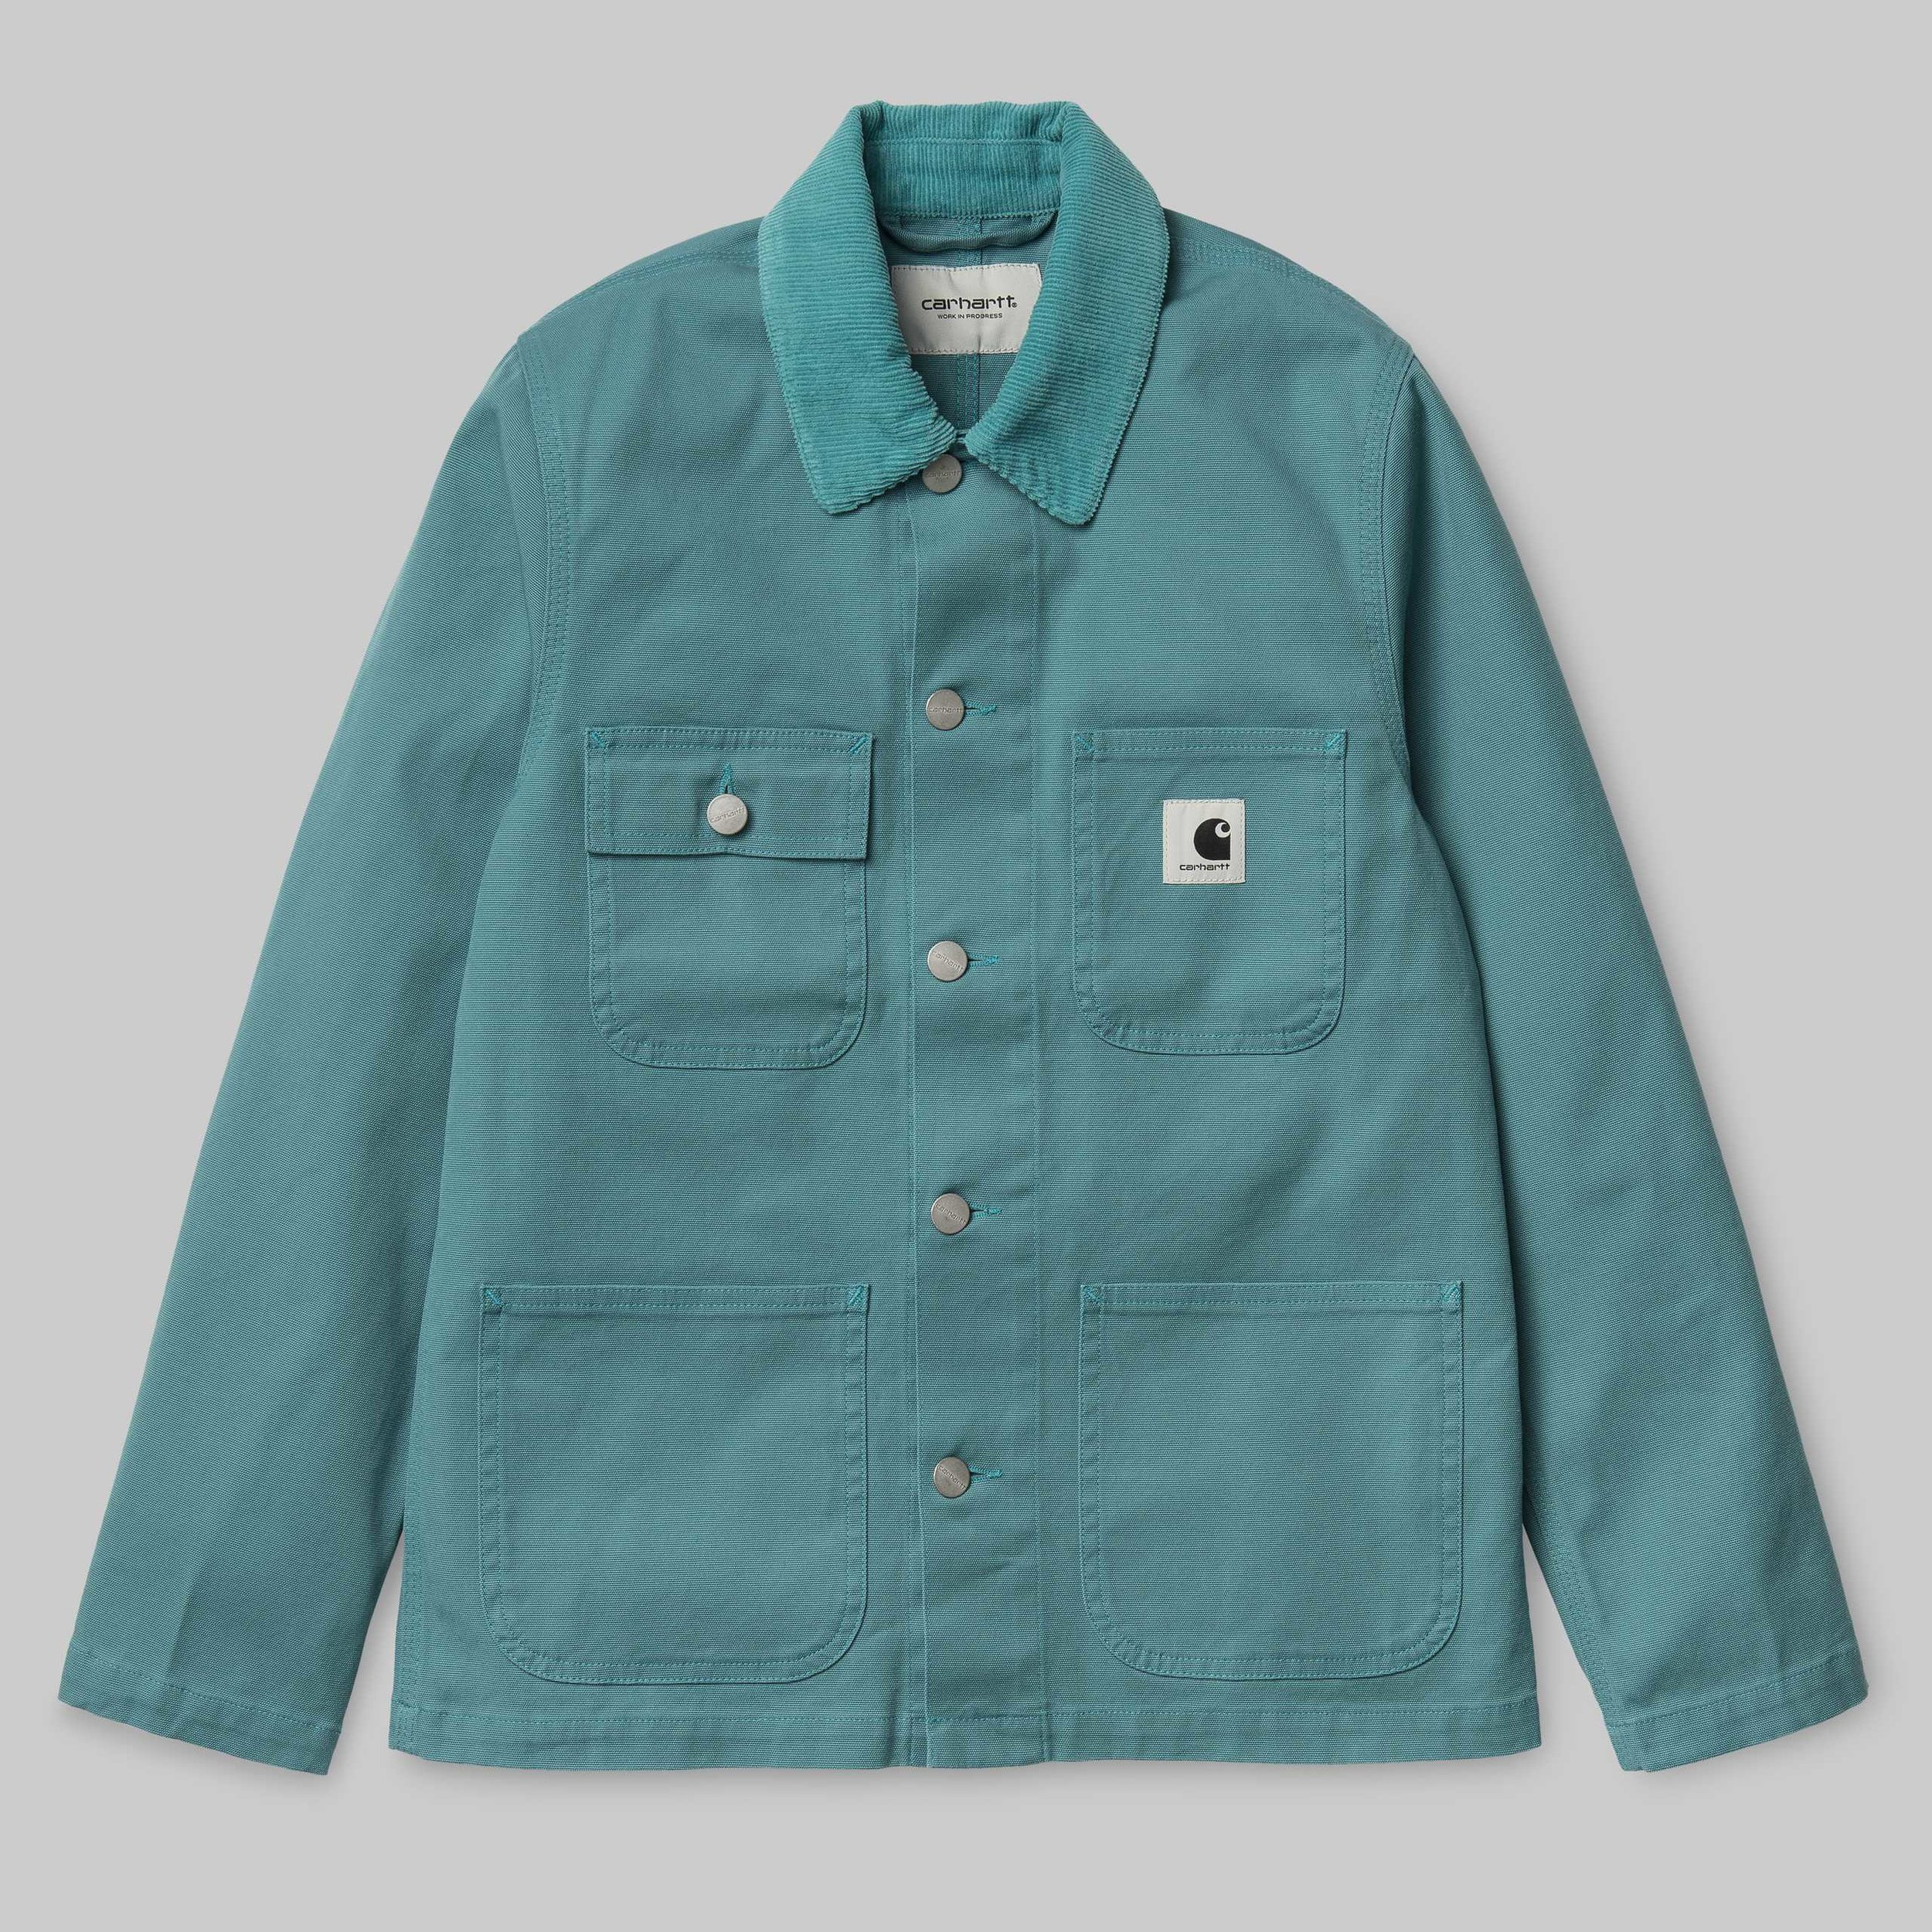 w-michigan-jacket-soft-teal-soft-teal-rinsed-410.jpeg